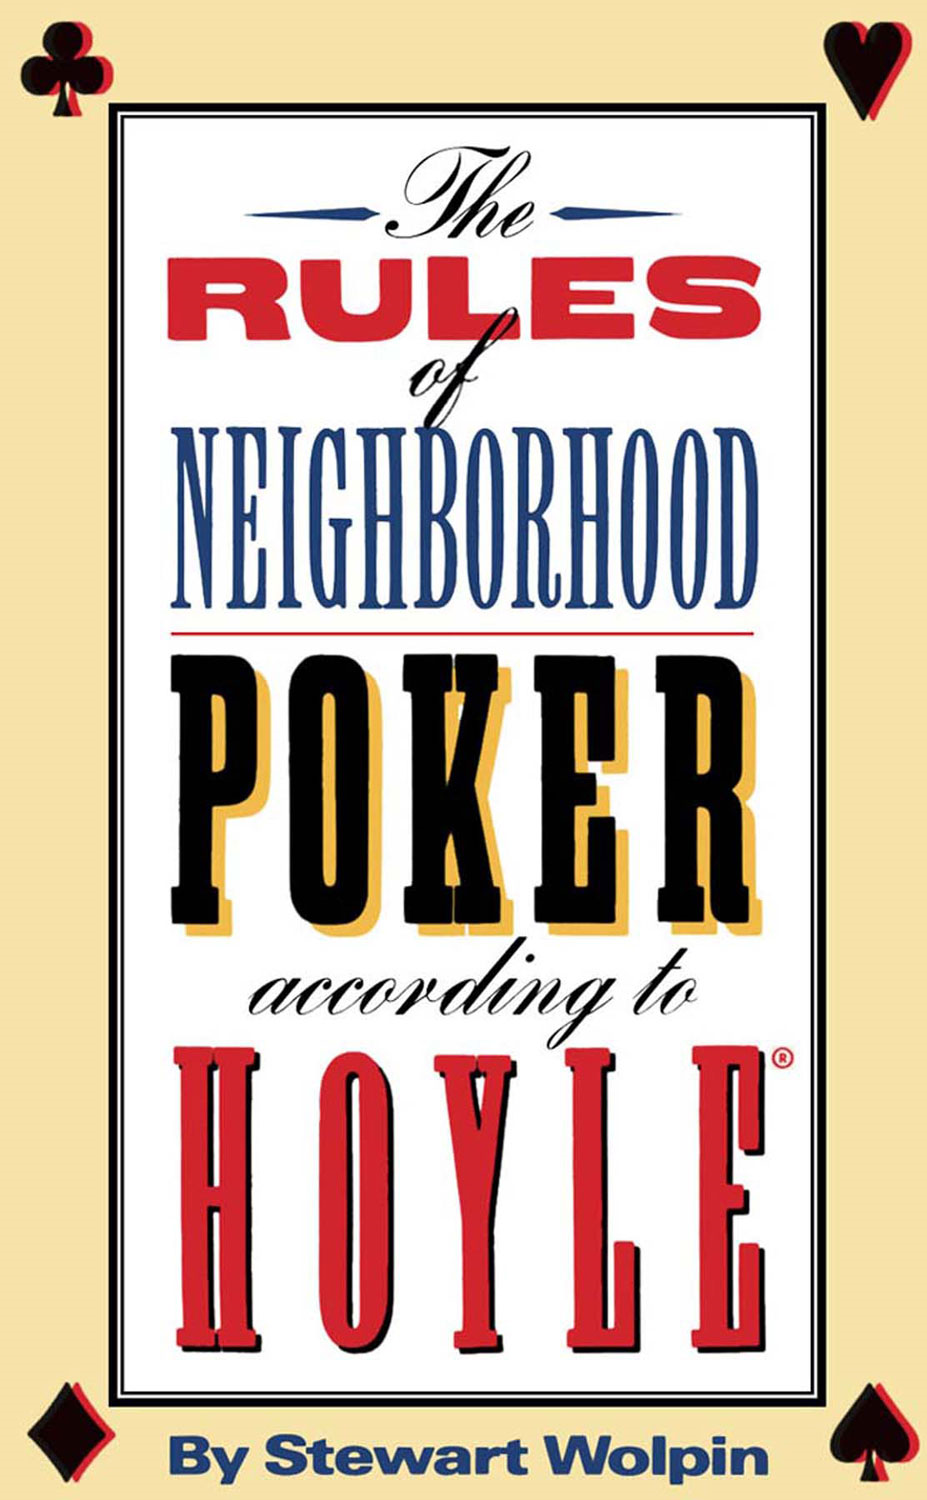 The Rules of Neighborhood Poker According to Hoyle By: Stewart Wolpin